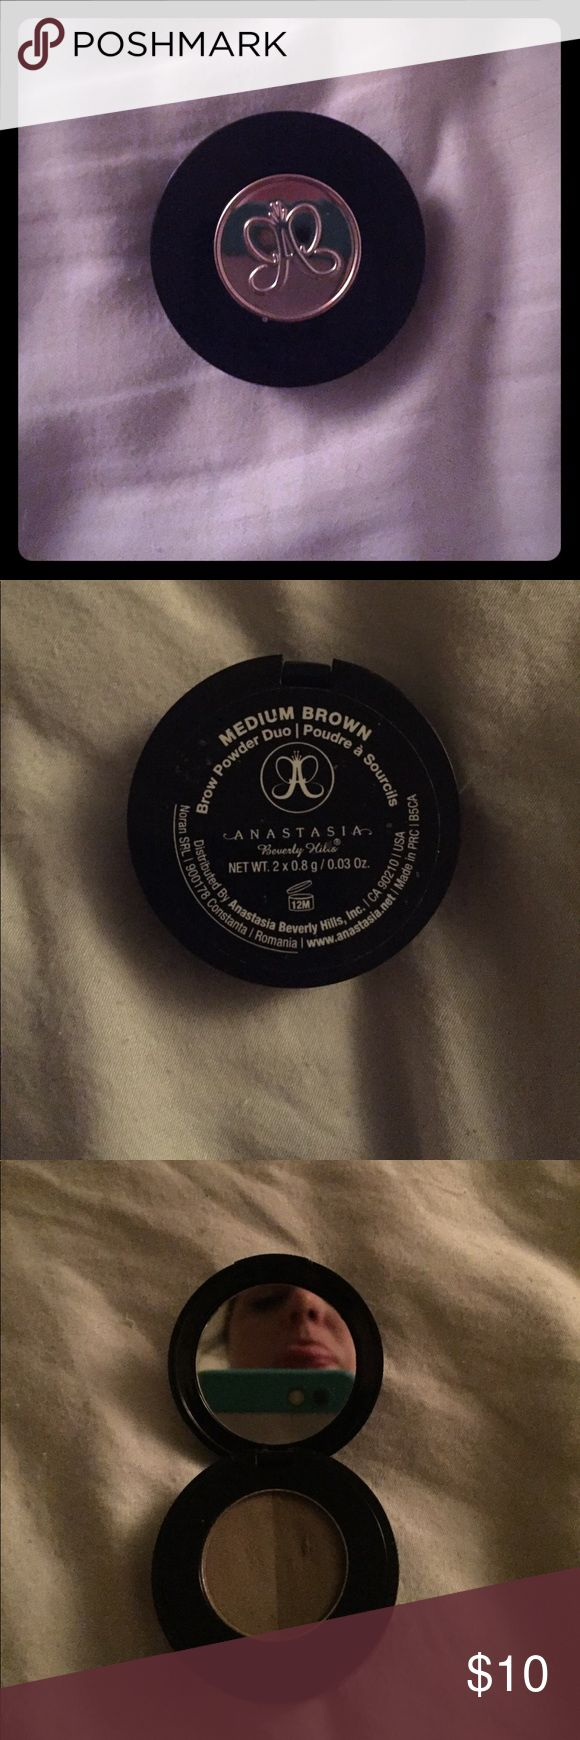 Anastasia brow powder duo This powder is in like new condition, used once or twice. I have no need for it anymore since finding my dream brow product. 👅 Anastasia Beverly Hills Makeup Eyebrow Filler